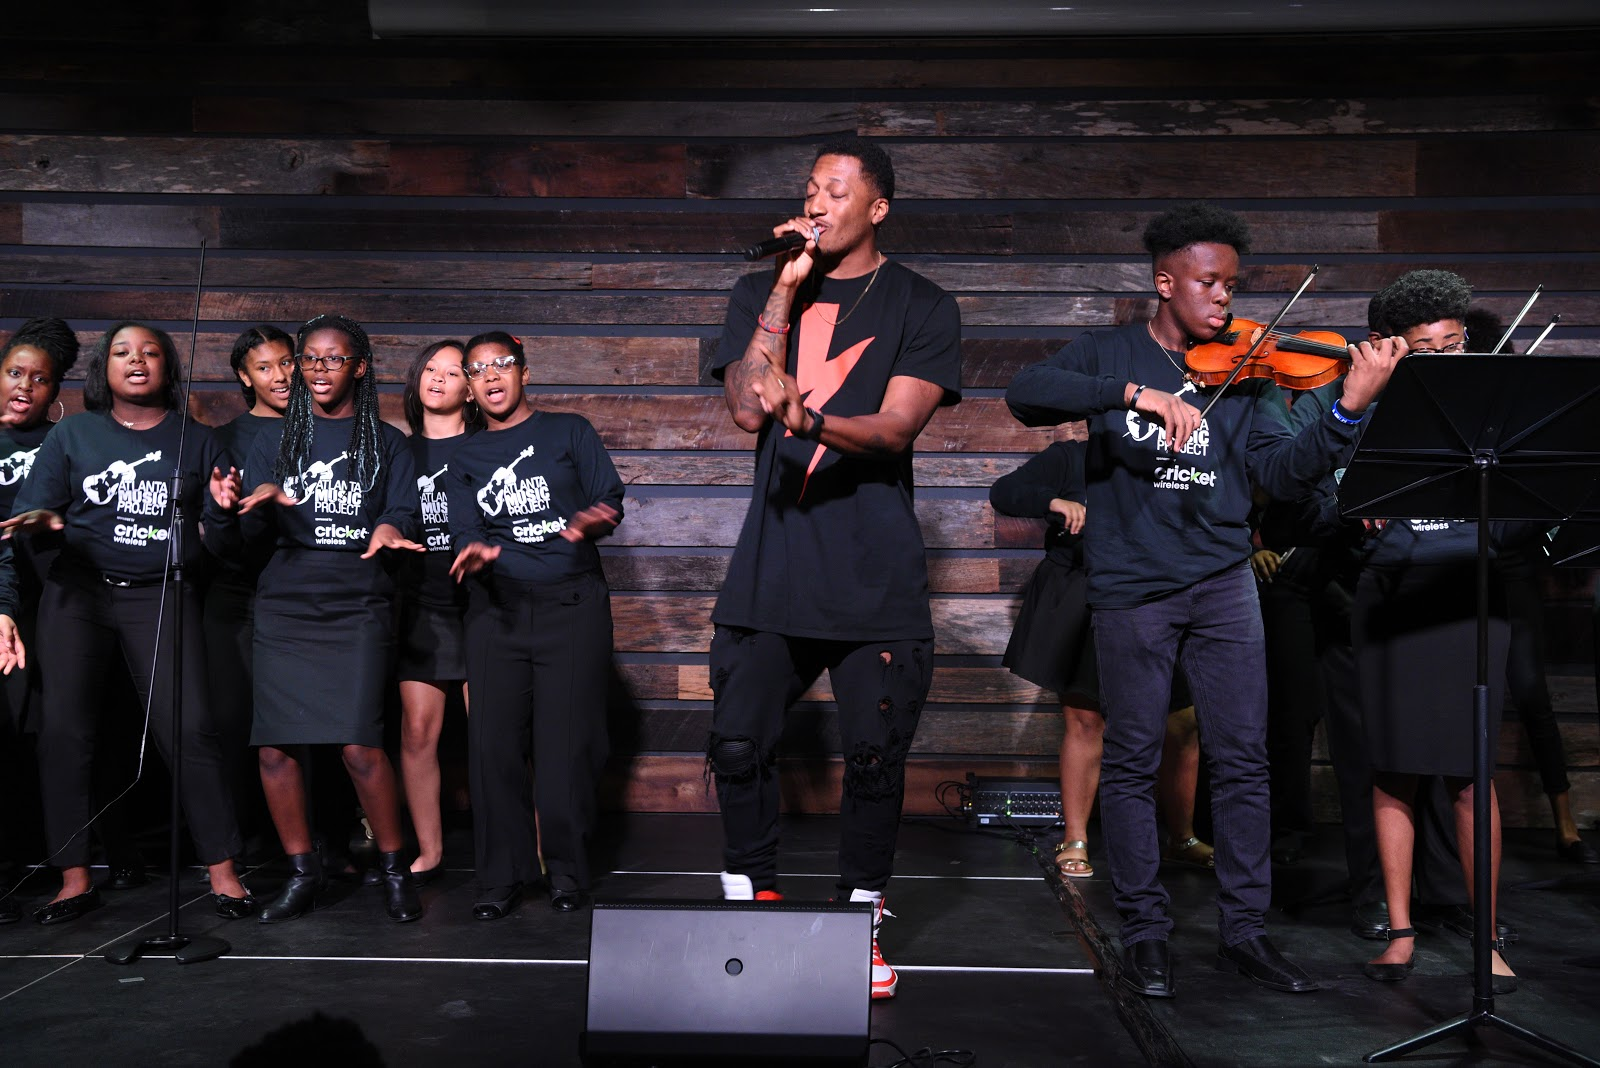 AMP Opens New Center for Performance & Education – The Atlanta Music